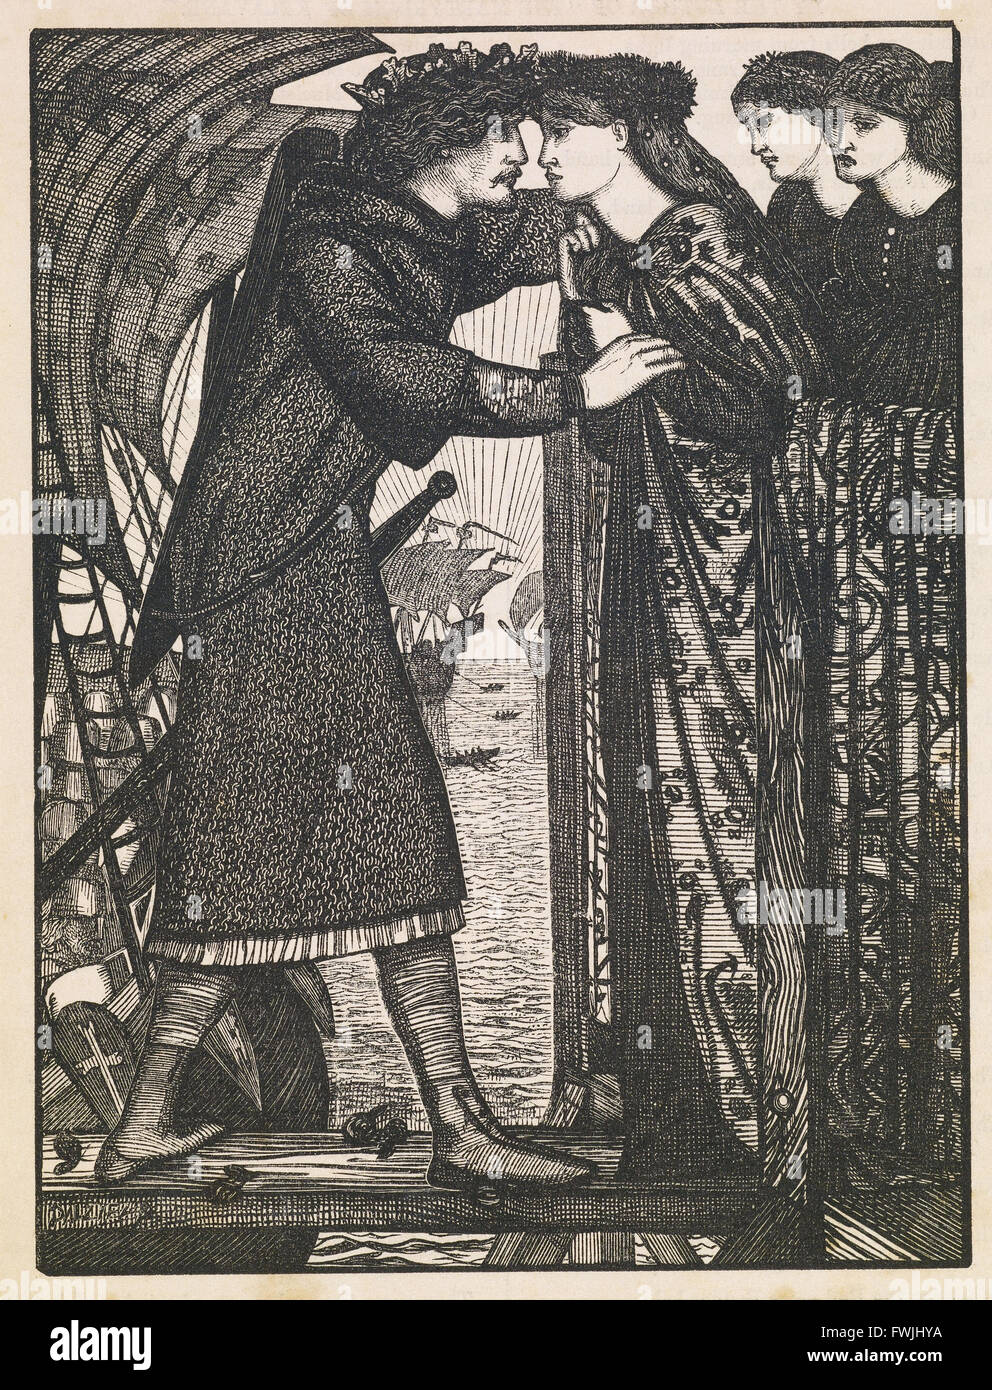 Edward Burne-Jones - King Sigurd the Crusader - A Norse Saga - Birmingham Museum and Art Gallery - Stock Image